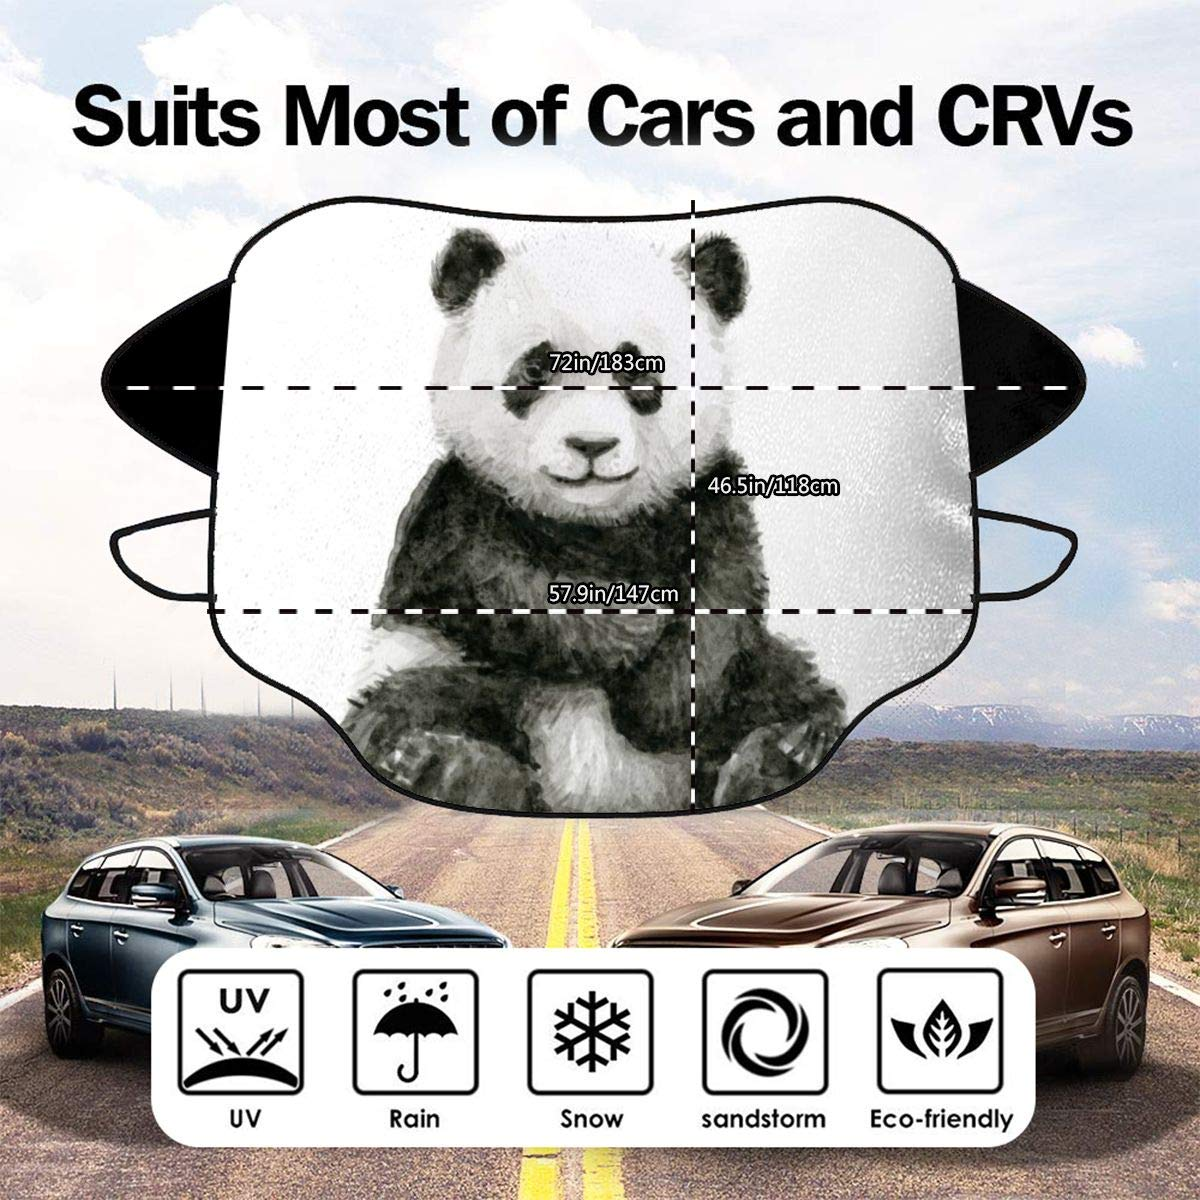 Lilyo-ltd Panda baby watercolor animal art Car Windshield Sun Shade Snow Cover Windscreen Protector Cover for Most Car Keep Your Vehicle Cool SUV Trucks,Protector Blocks Heat /& Sun